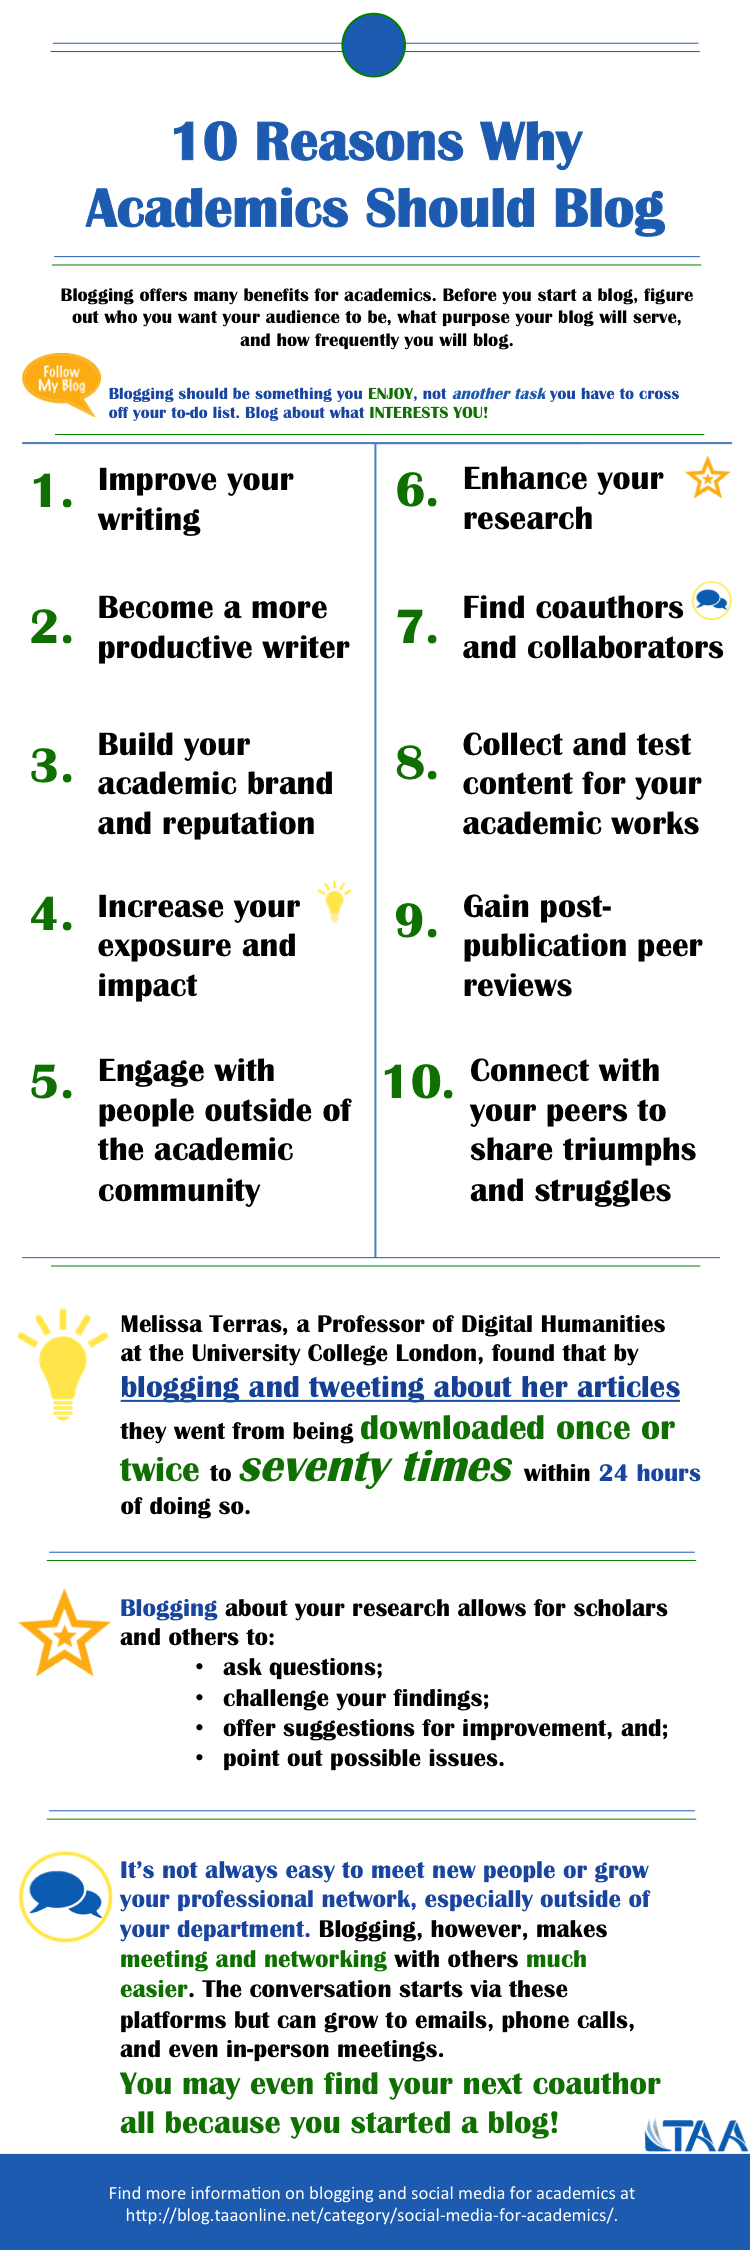 infographic_10 reasons why academics should blog